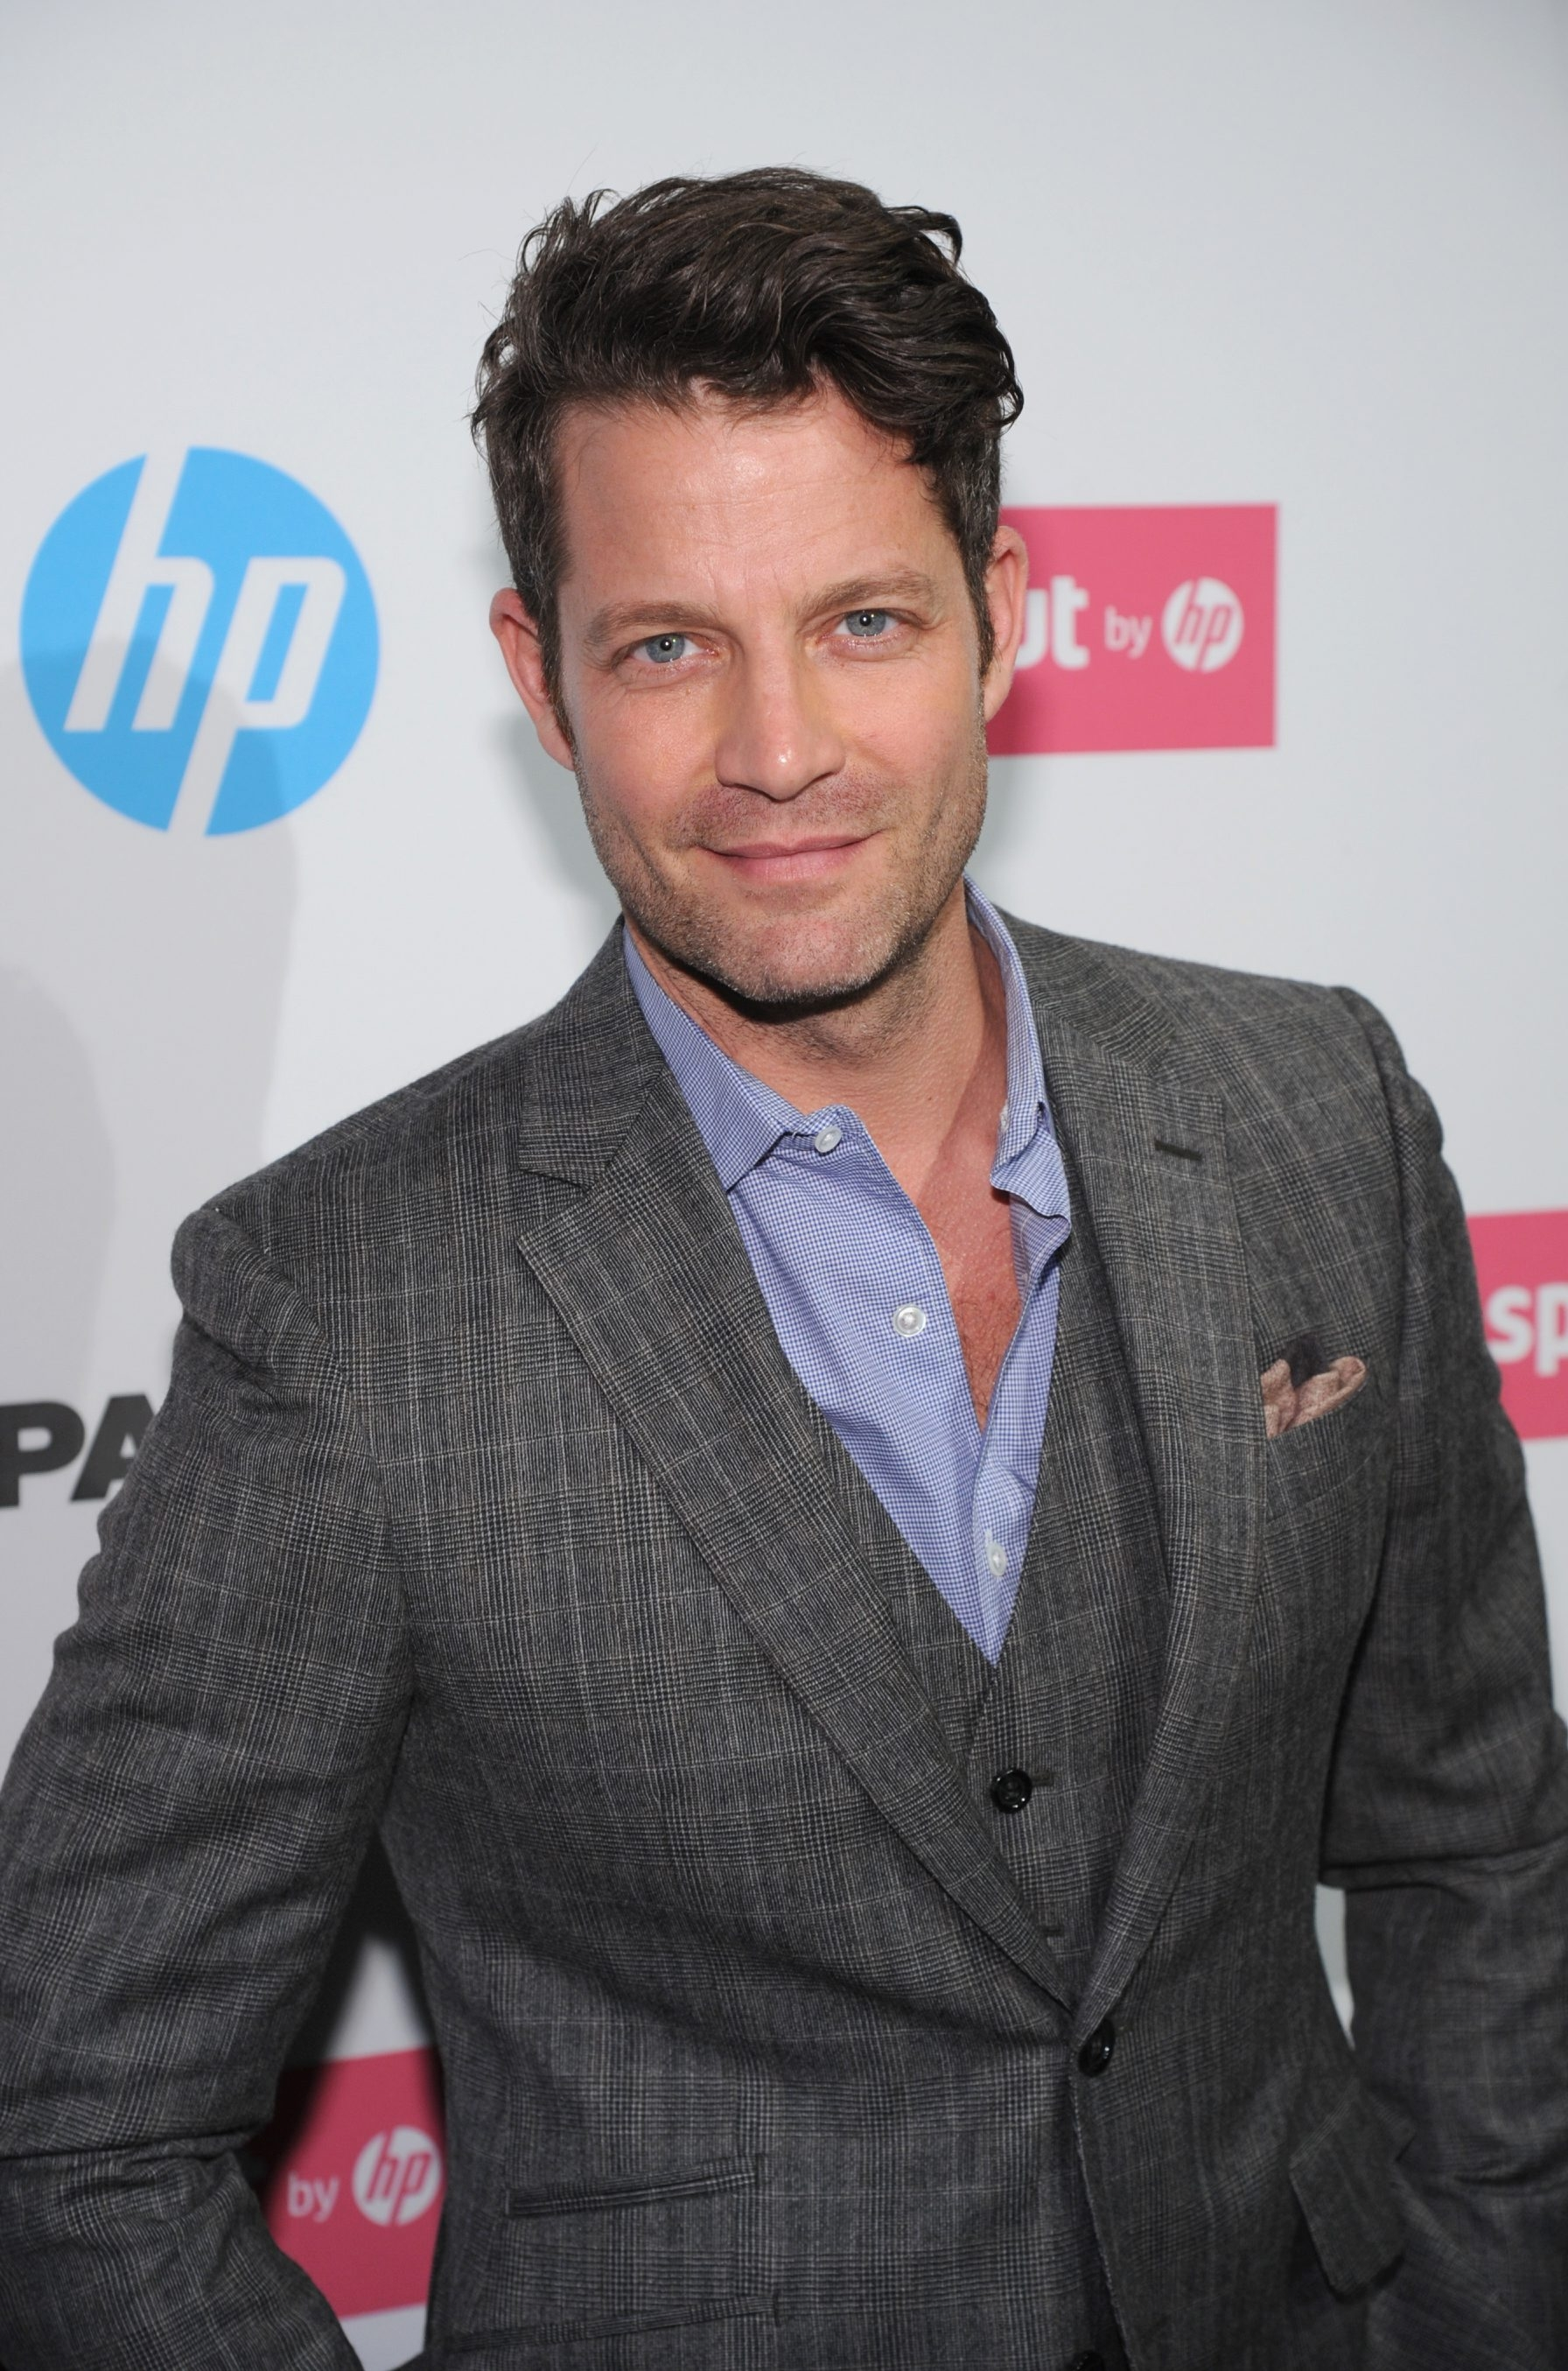 NEW YORK, NY - OCTOBER 29:  Interior designer, author, TV host and television personality Nate Berkus attends the red carpet at the Sprout by HP and HP Multi Jet Fusion 3D Printer Launch Event in New York City.  (Photo by Bryan Bedder/Getty Images)